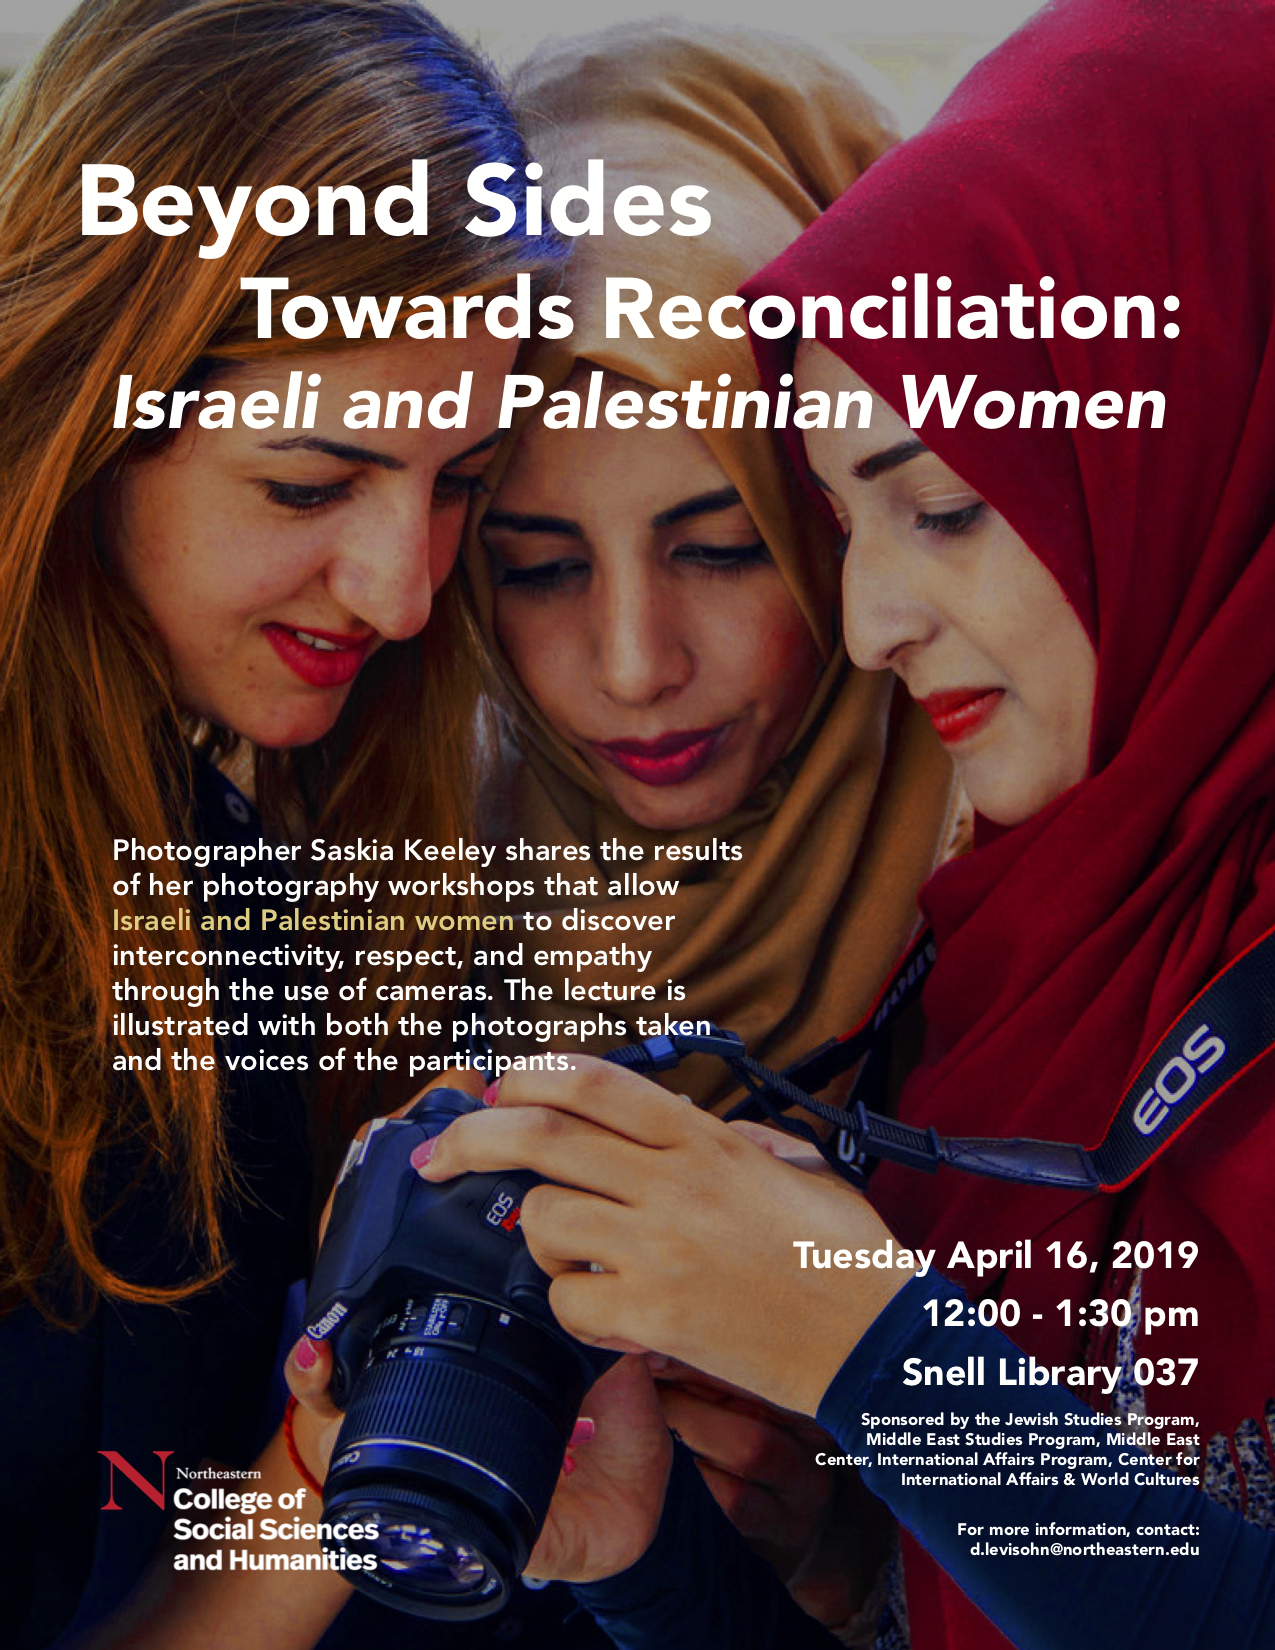 saskia-keeley-photography-humanitarian-photo-workshops-peacemaking-northeastern-university-boston-beyond-sides-toward-reconciliation-in-israel-and-palestine.png